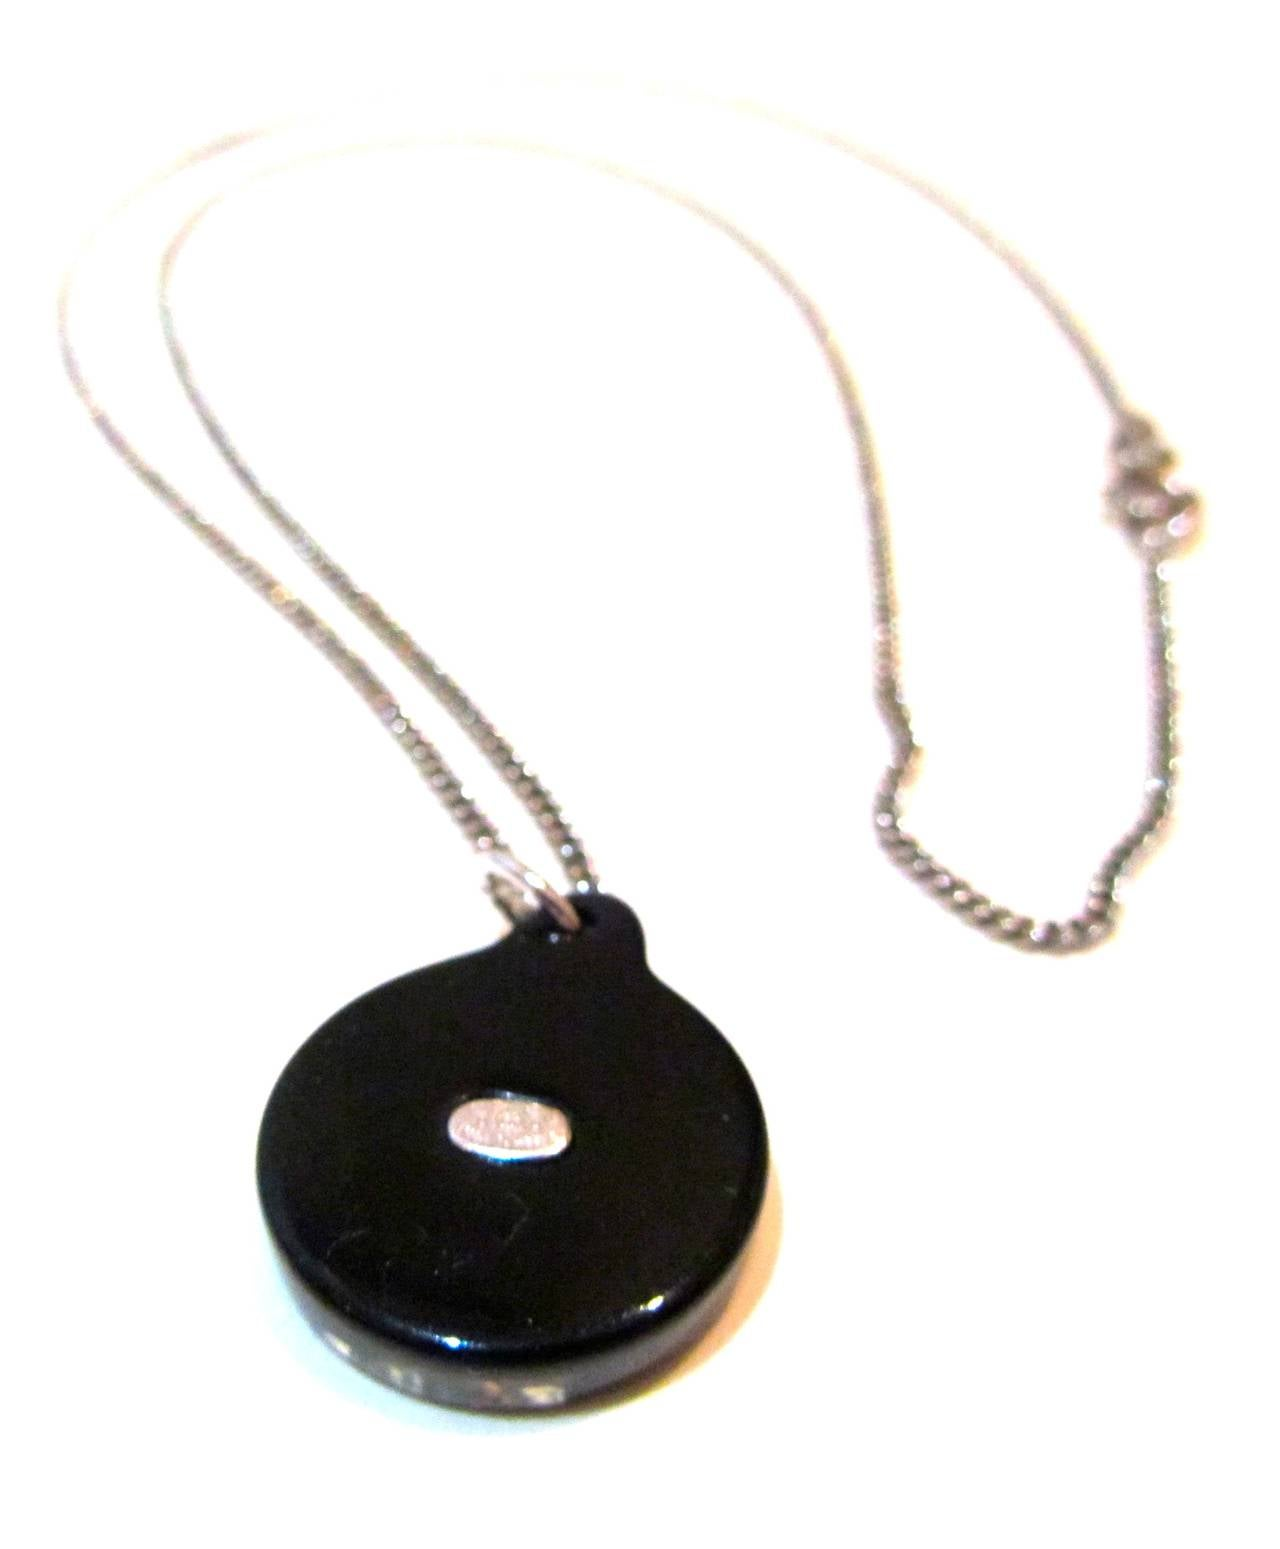 Chanel Necklace - Silver Tone Chain - Black Resin Charm with Crystal CC Inlay 2